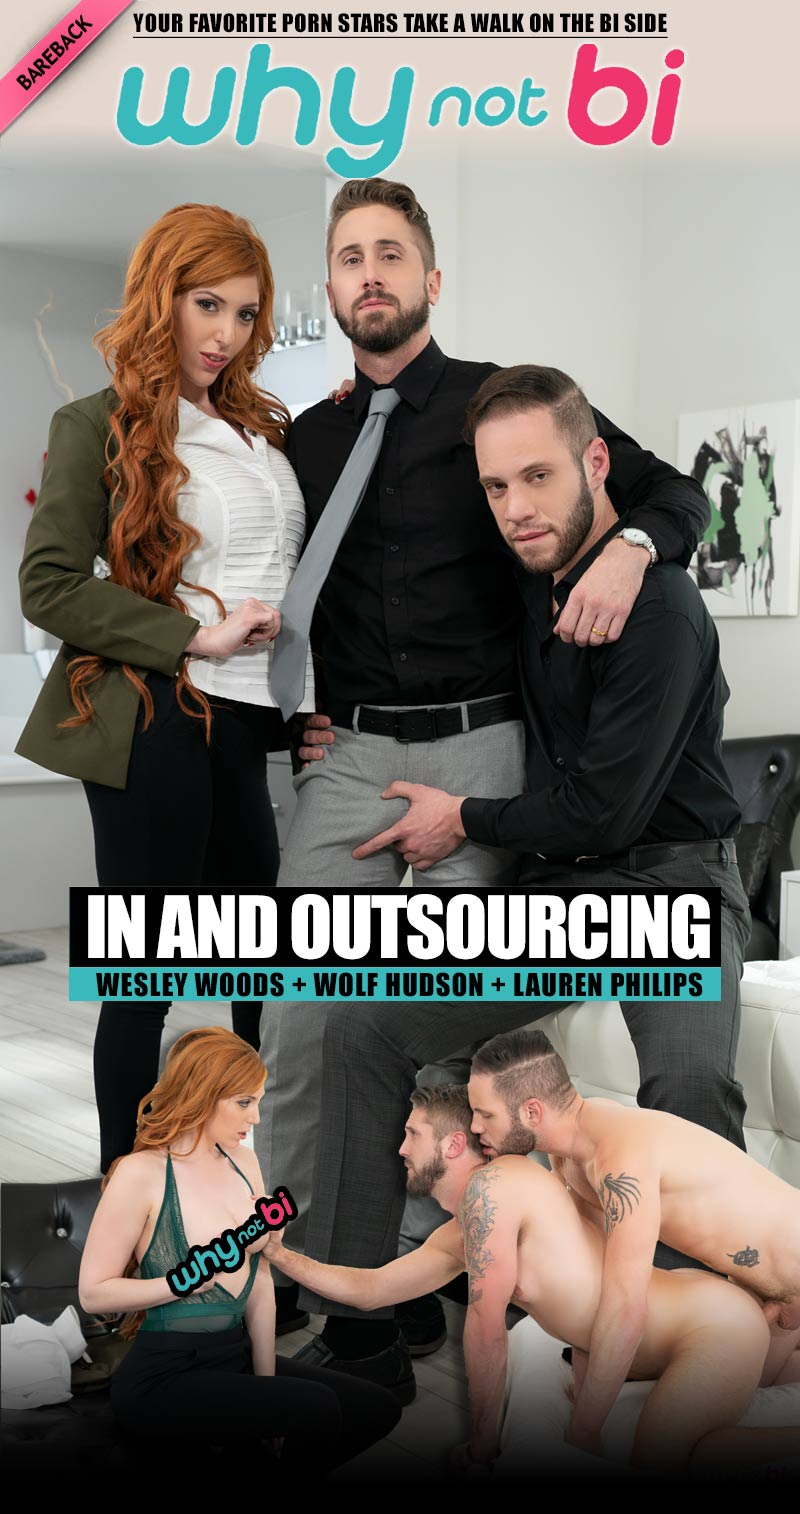 In-And-Out Sourcing (Wesley Woods, Wolf Hudson and Lauren Philips) at WhyNotBi